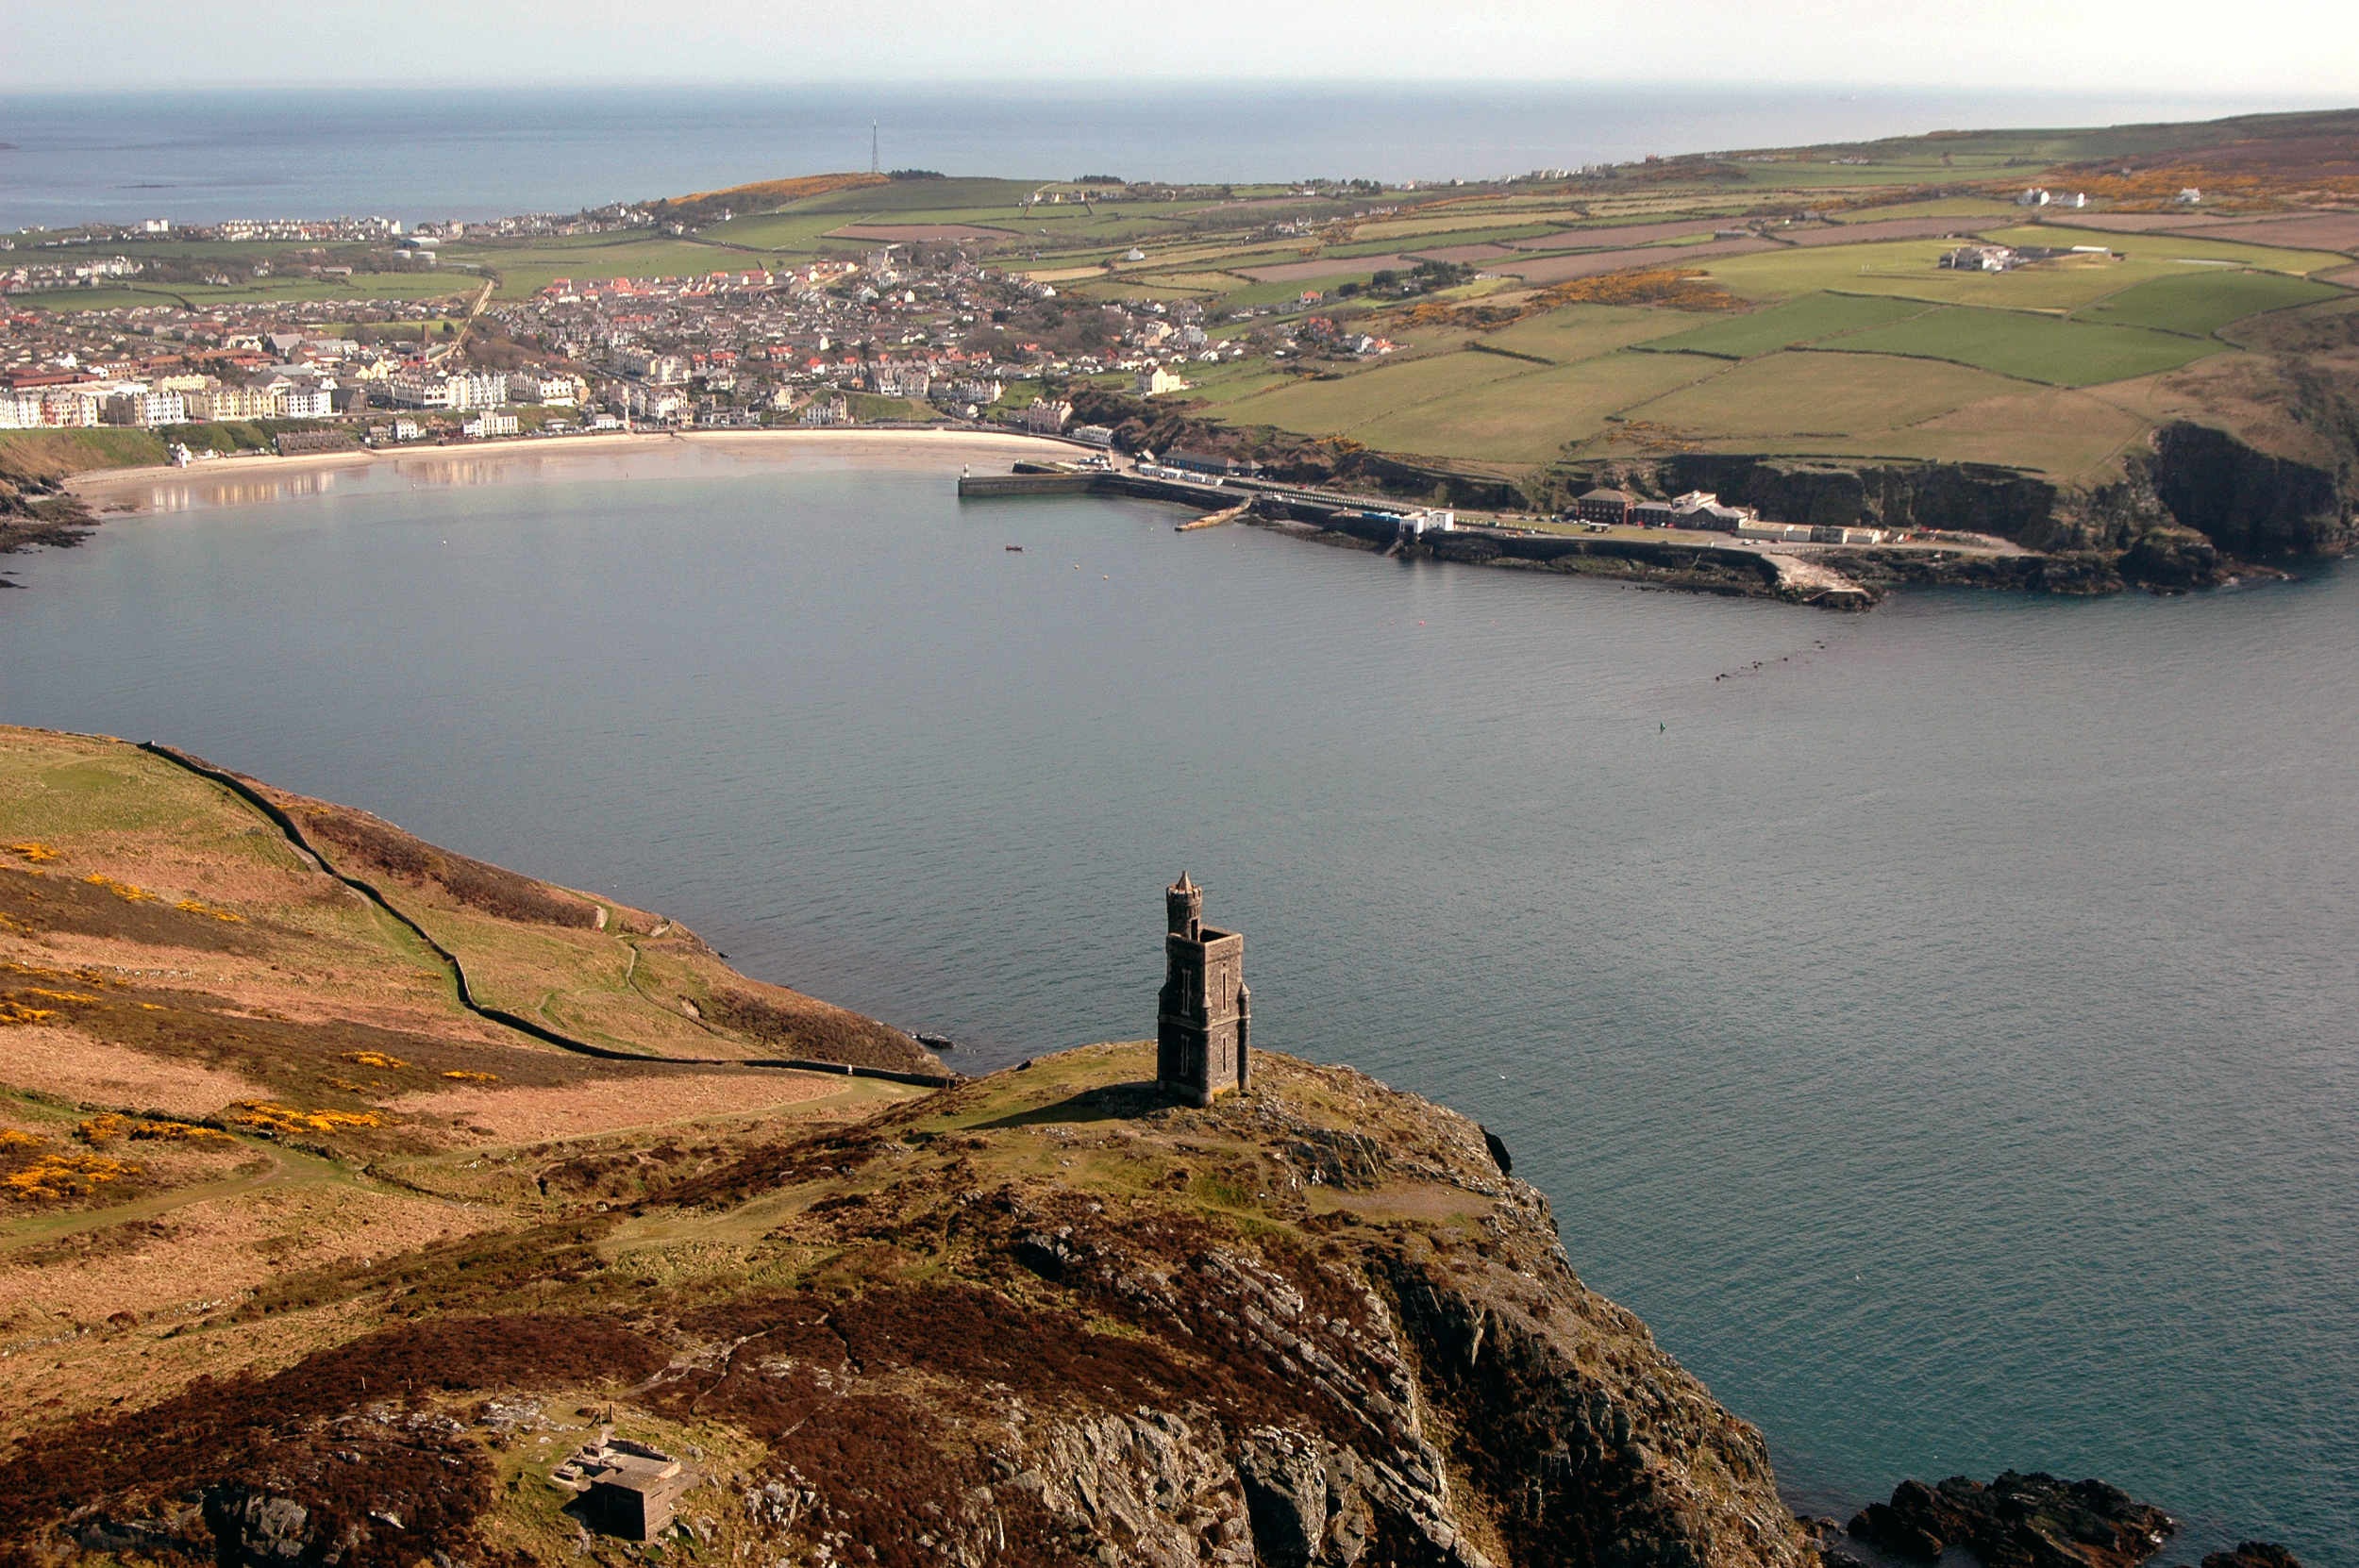 Bradda Head, Milner's Tower and Port Erin